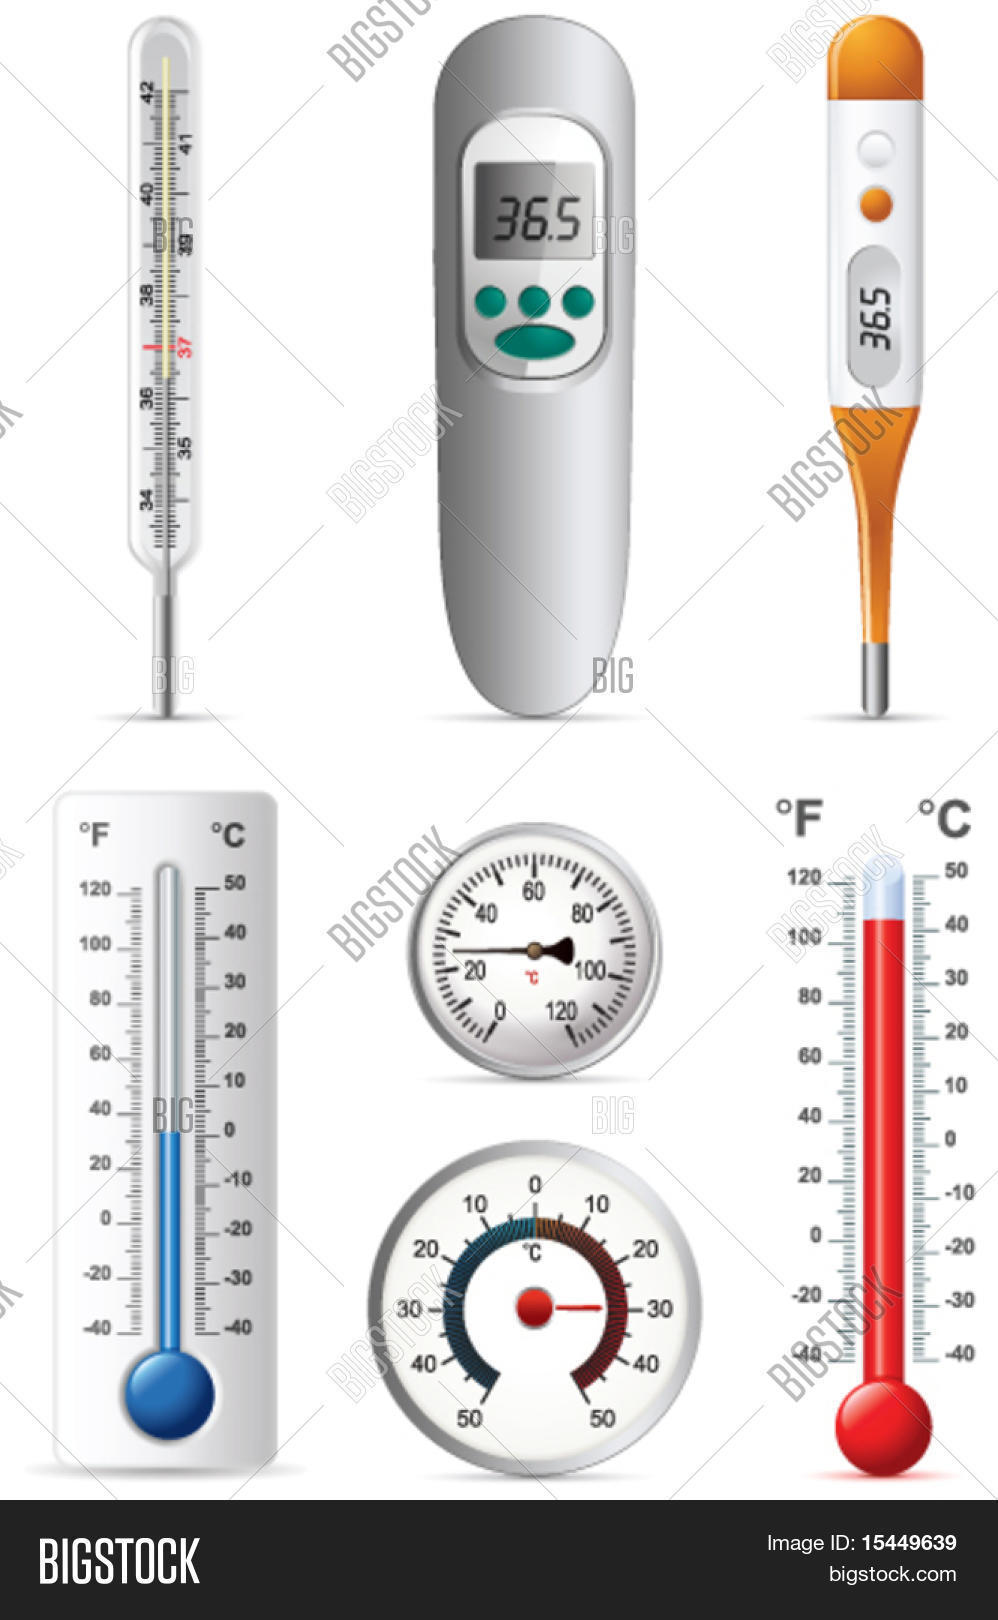 6 Different Types Of Artificial Nails You Can Try: Six Different Types Thermometers Vector & Photo